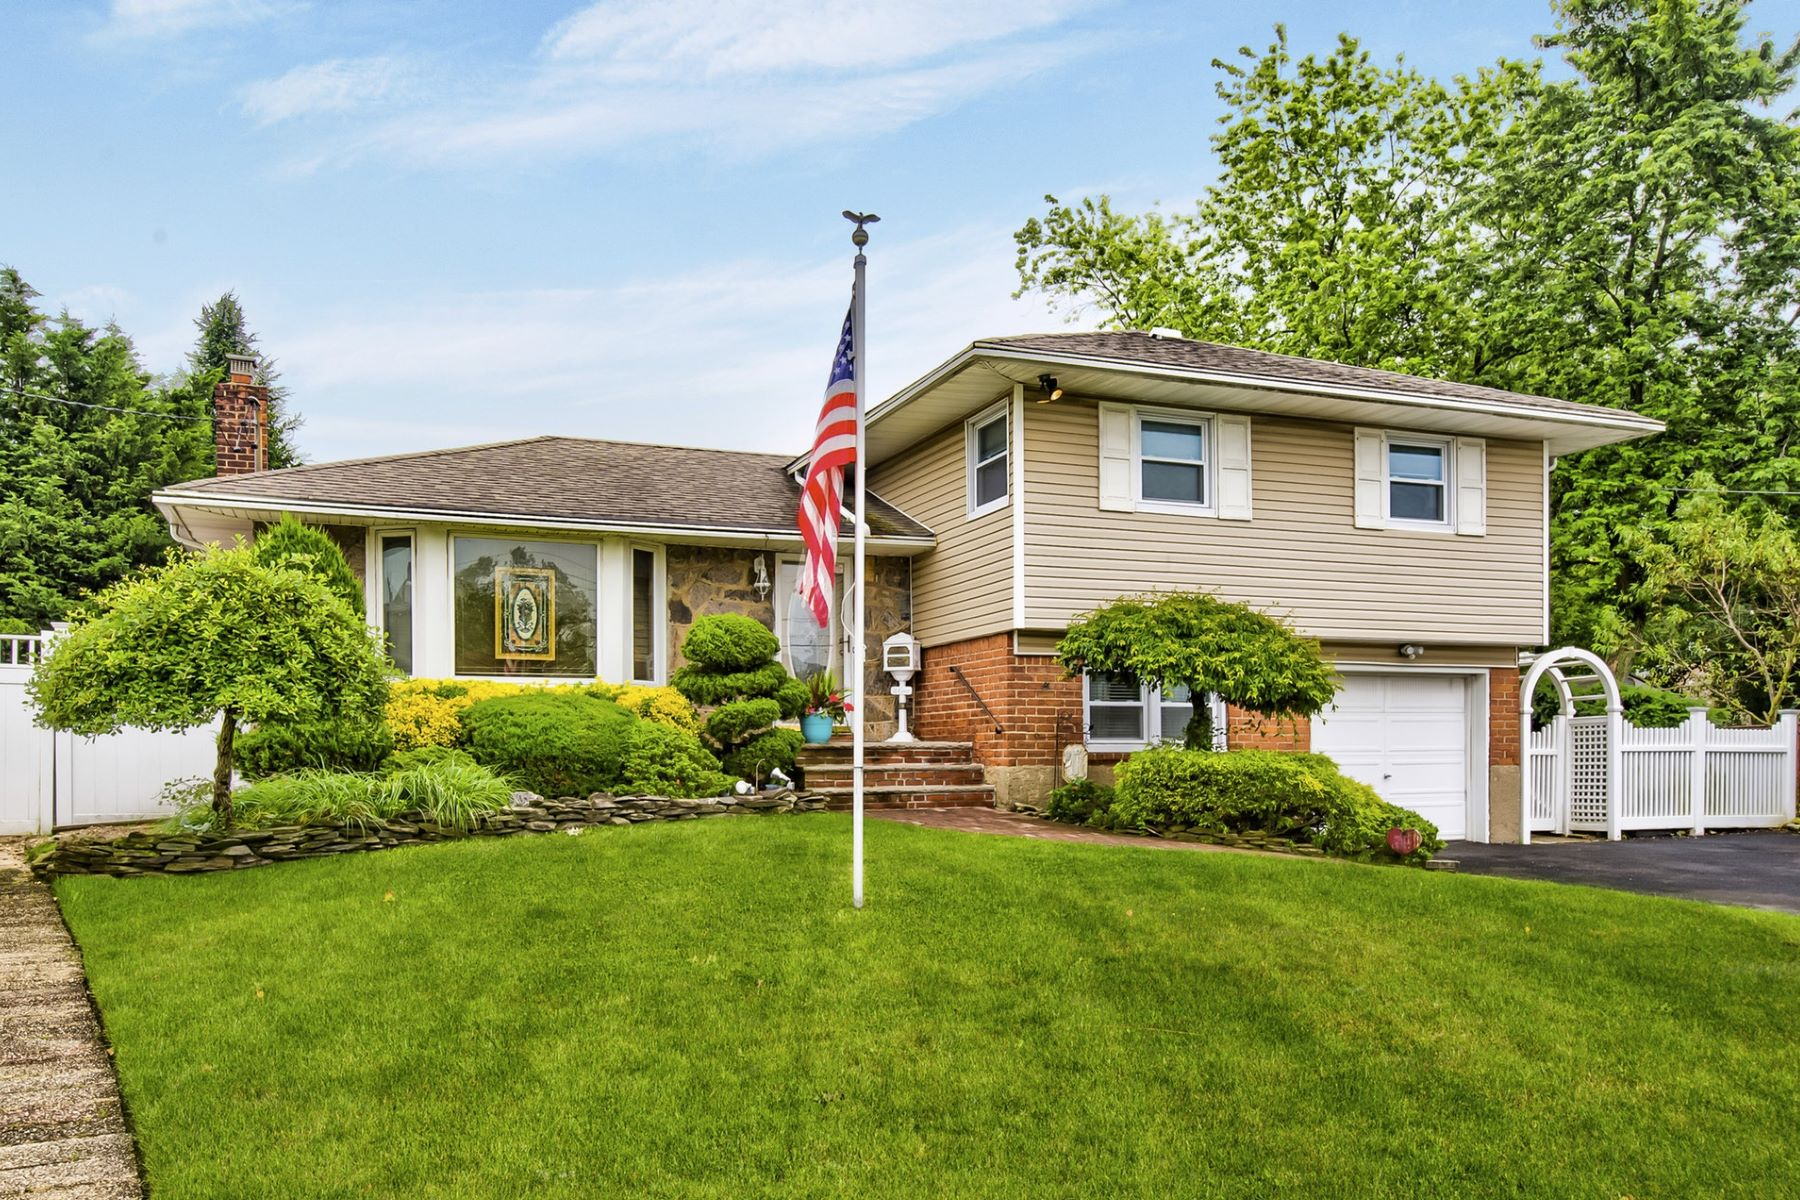 Single Family Homes for Sale at Massapequa 8 Cree Ct Massapequa, New York 11758 United States